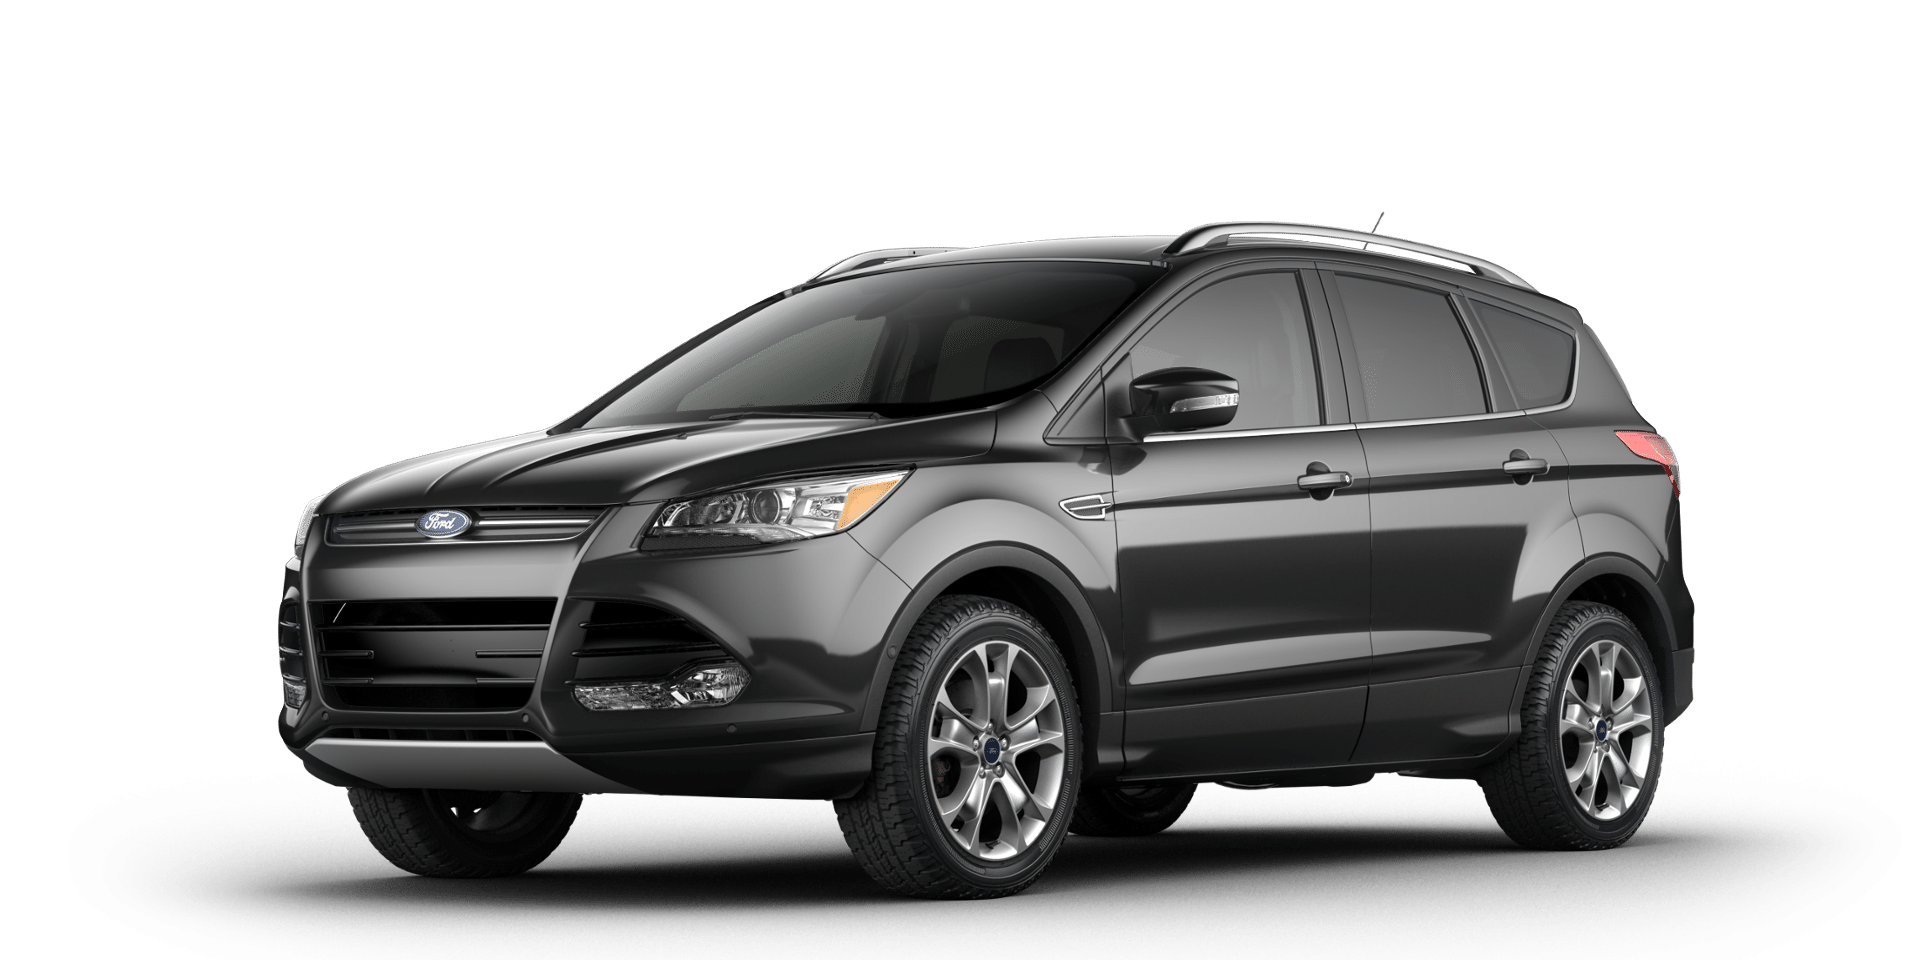 2016 Ford Escape Metallic with Black leather seats; as